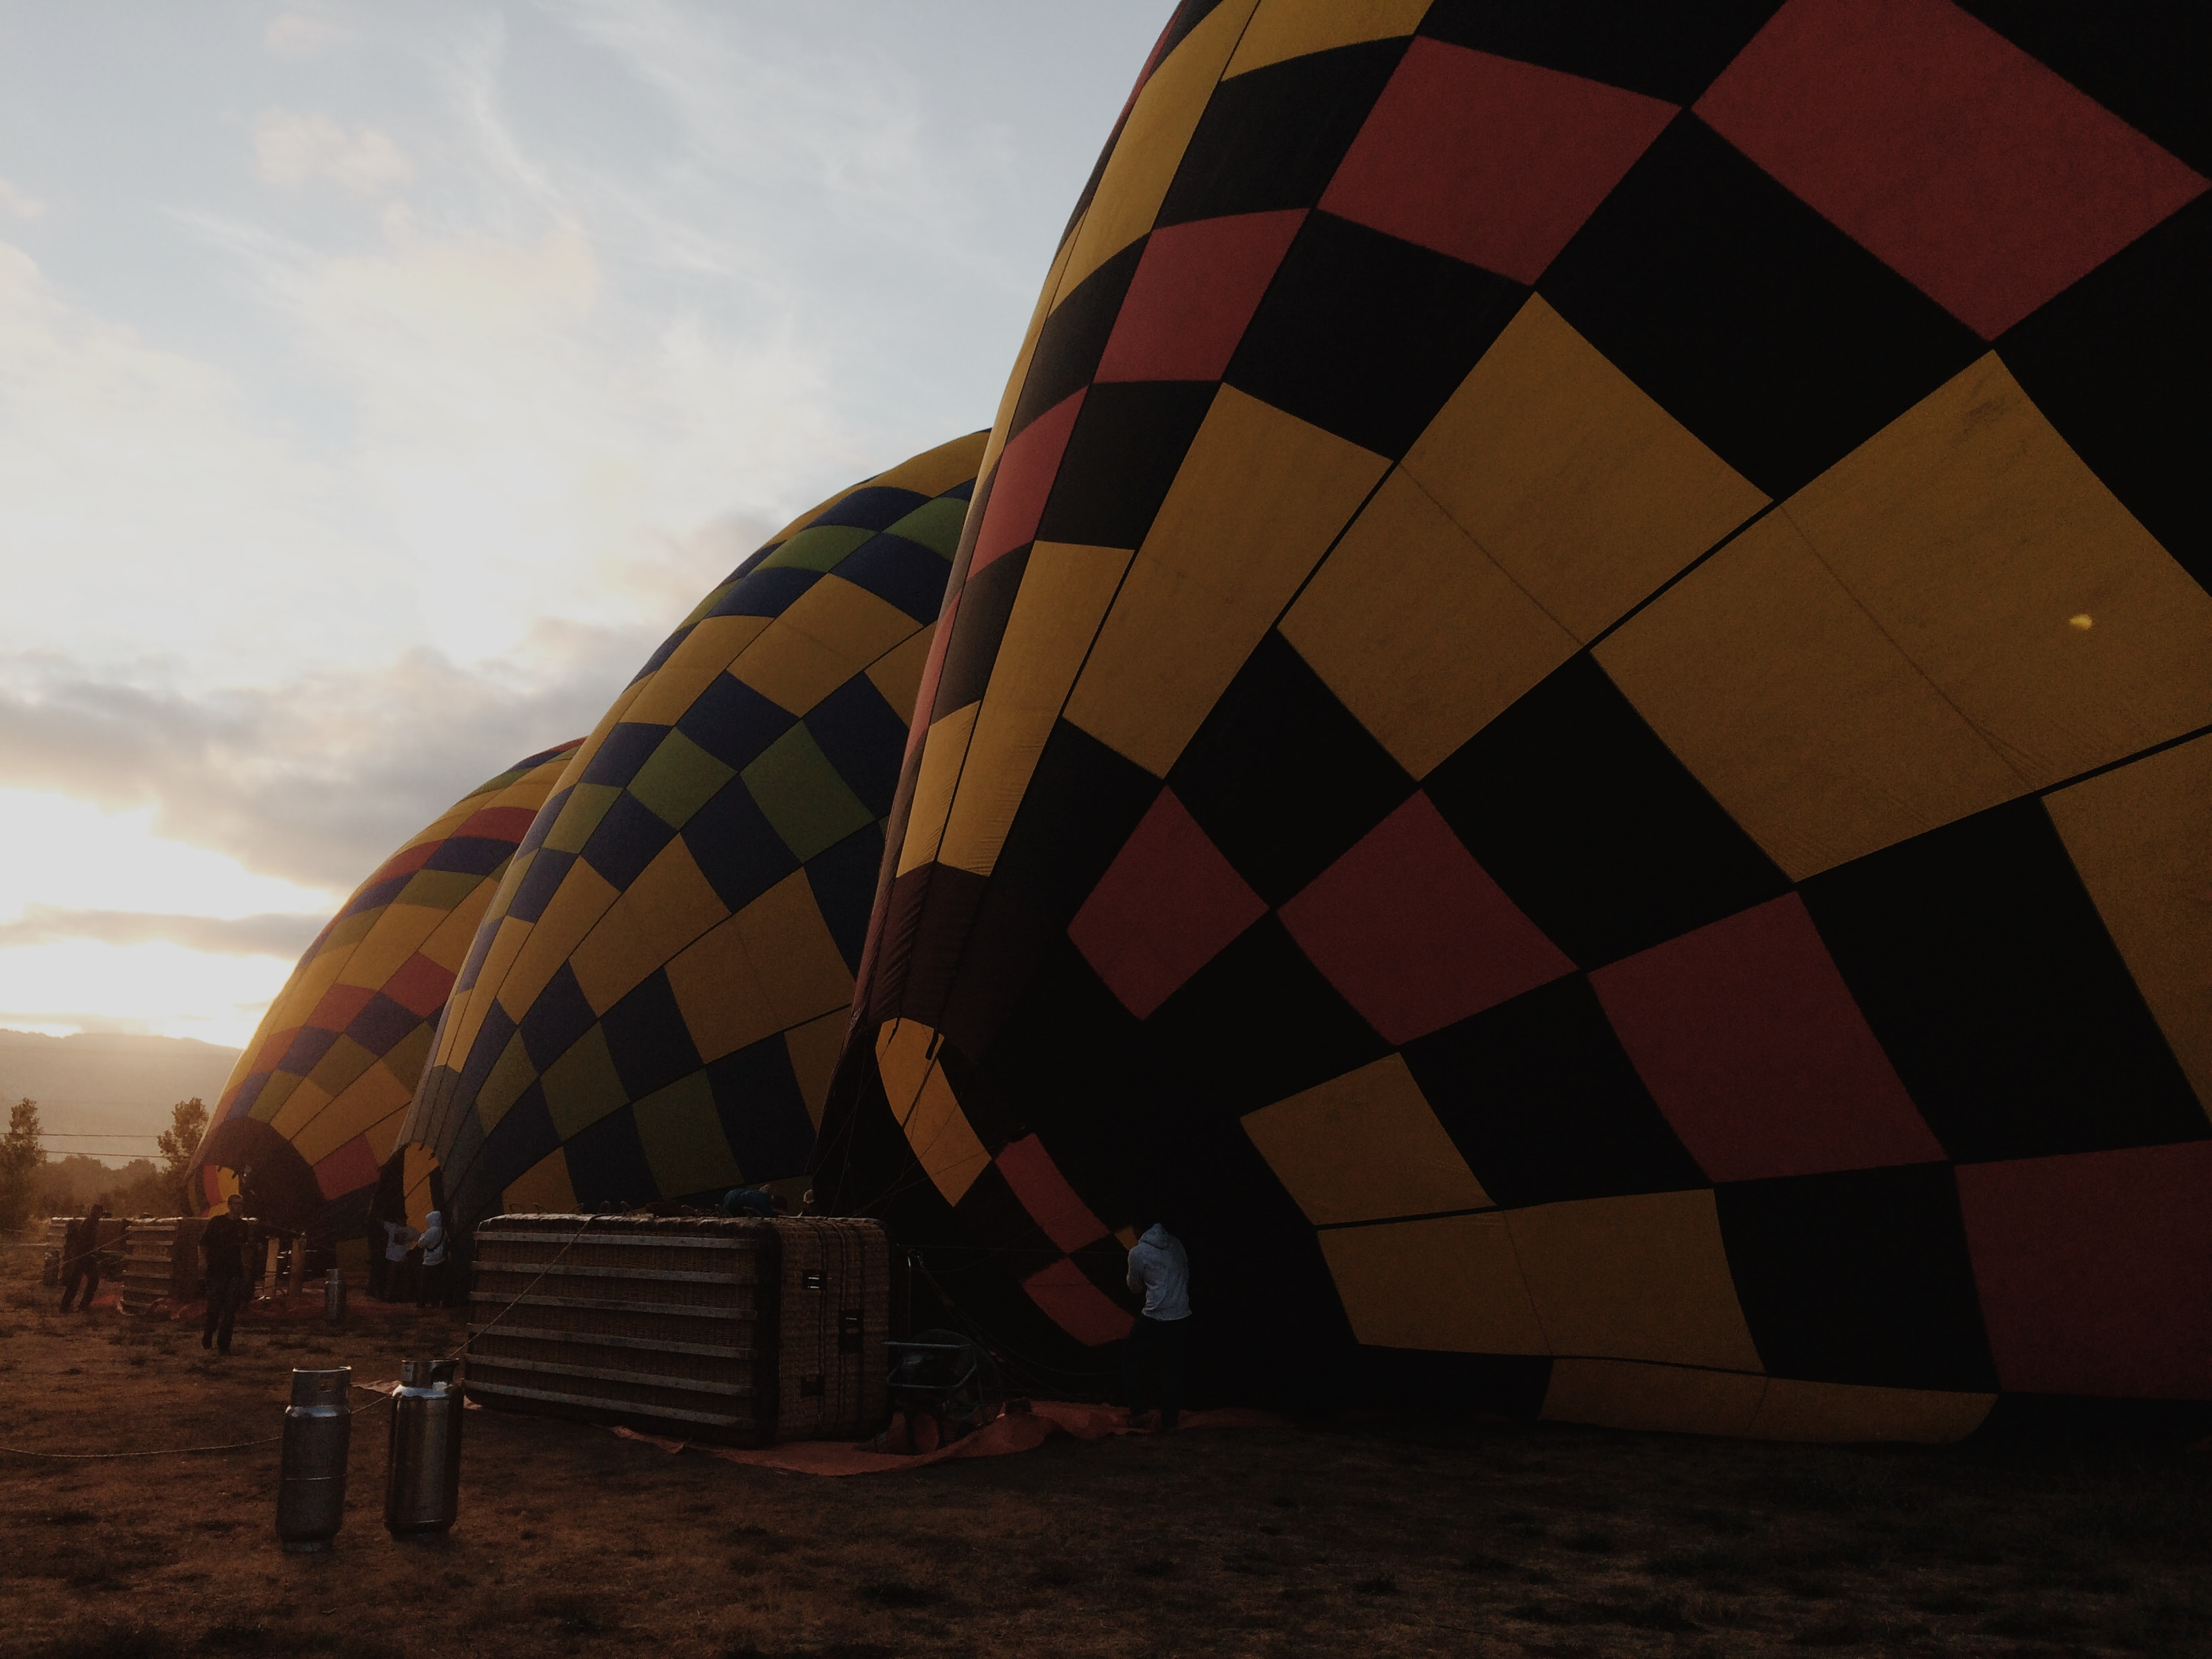 Three hot air balloons on the ground